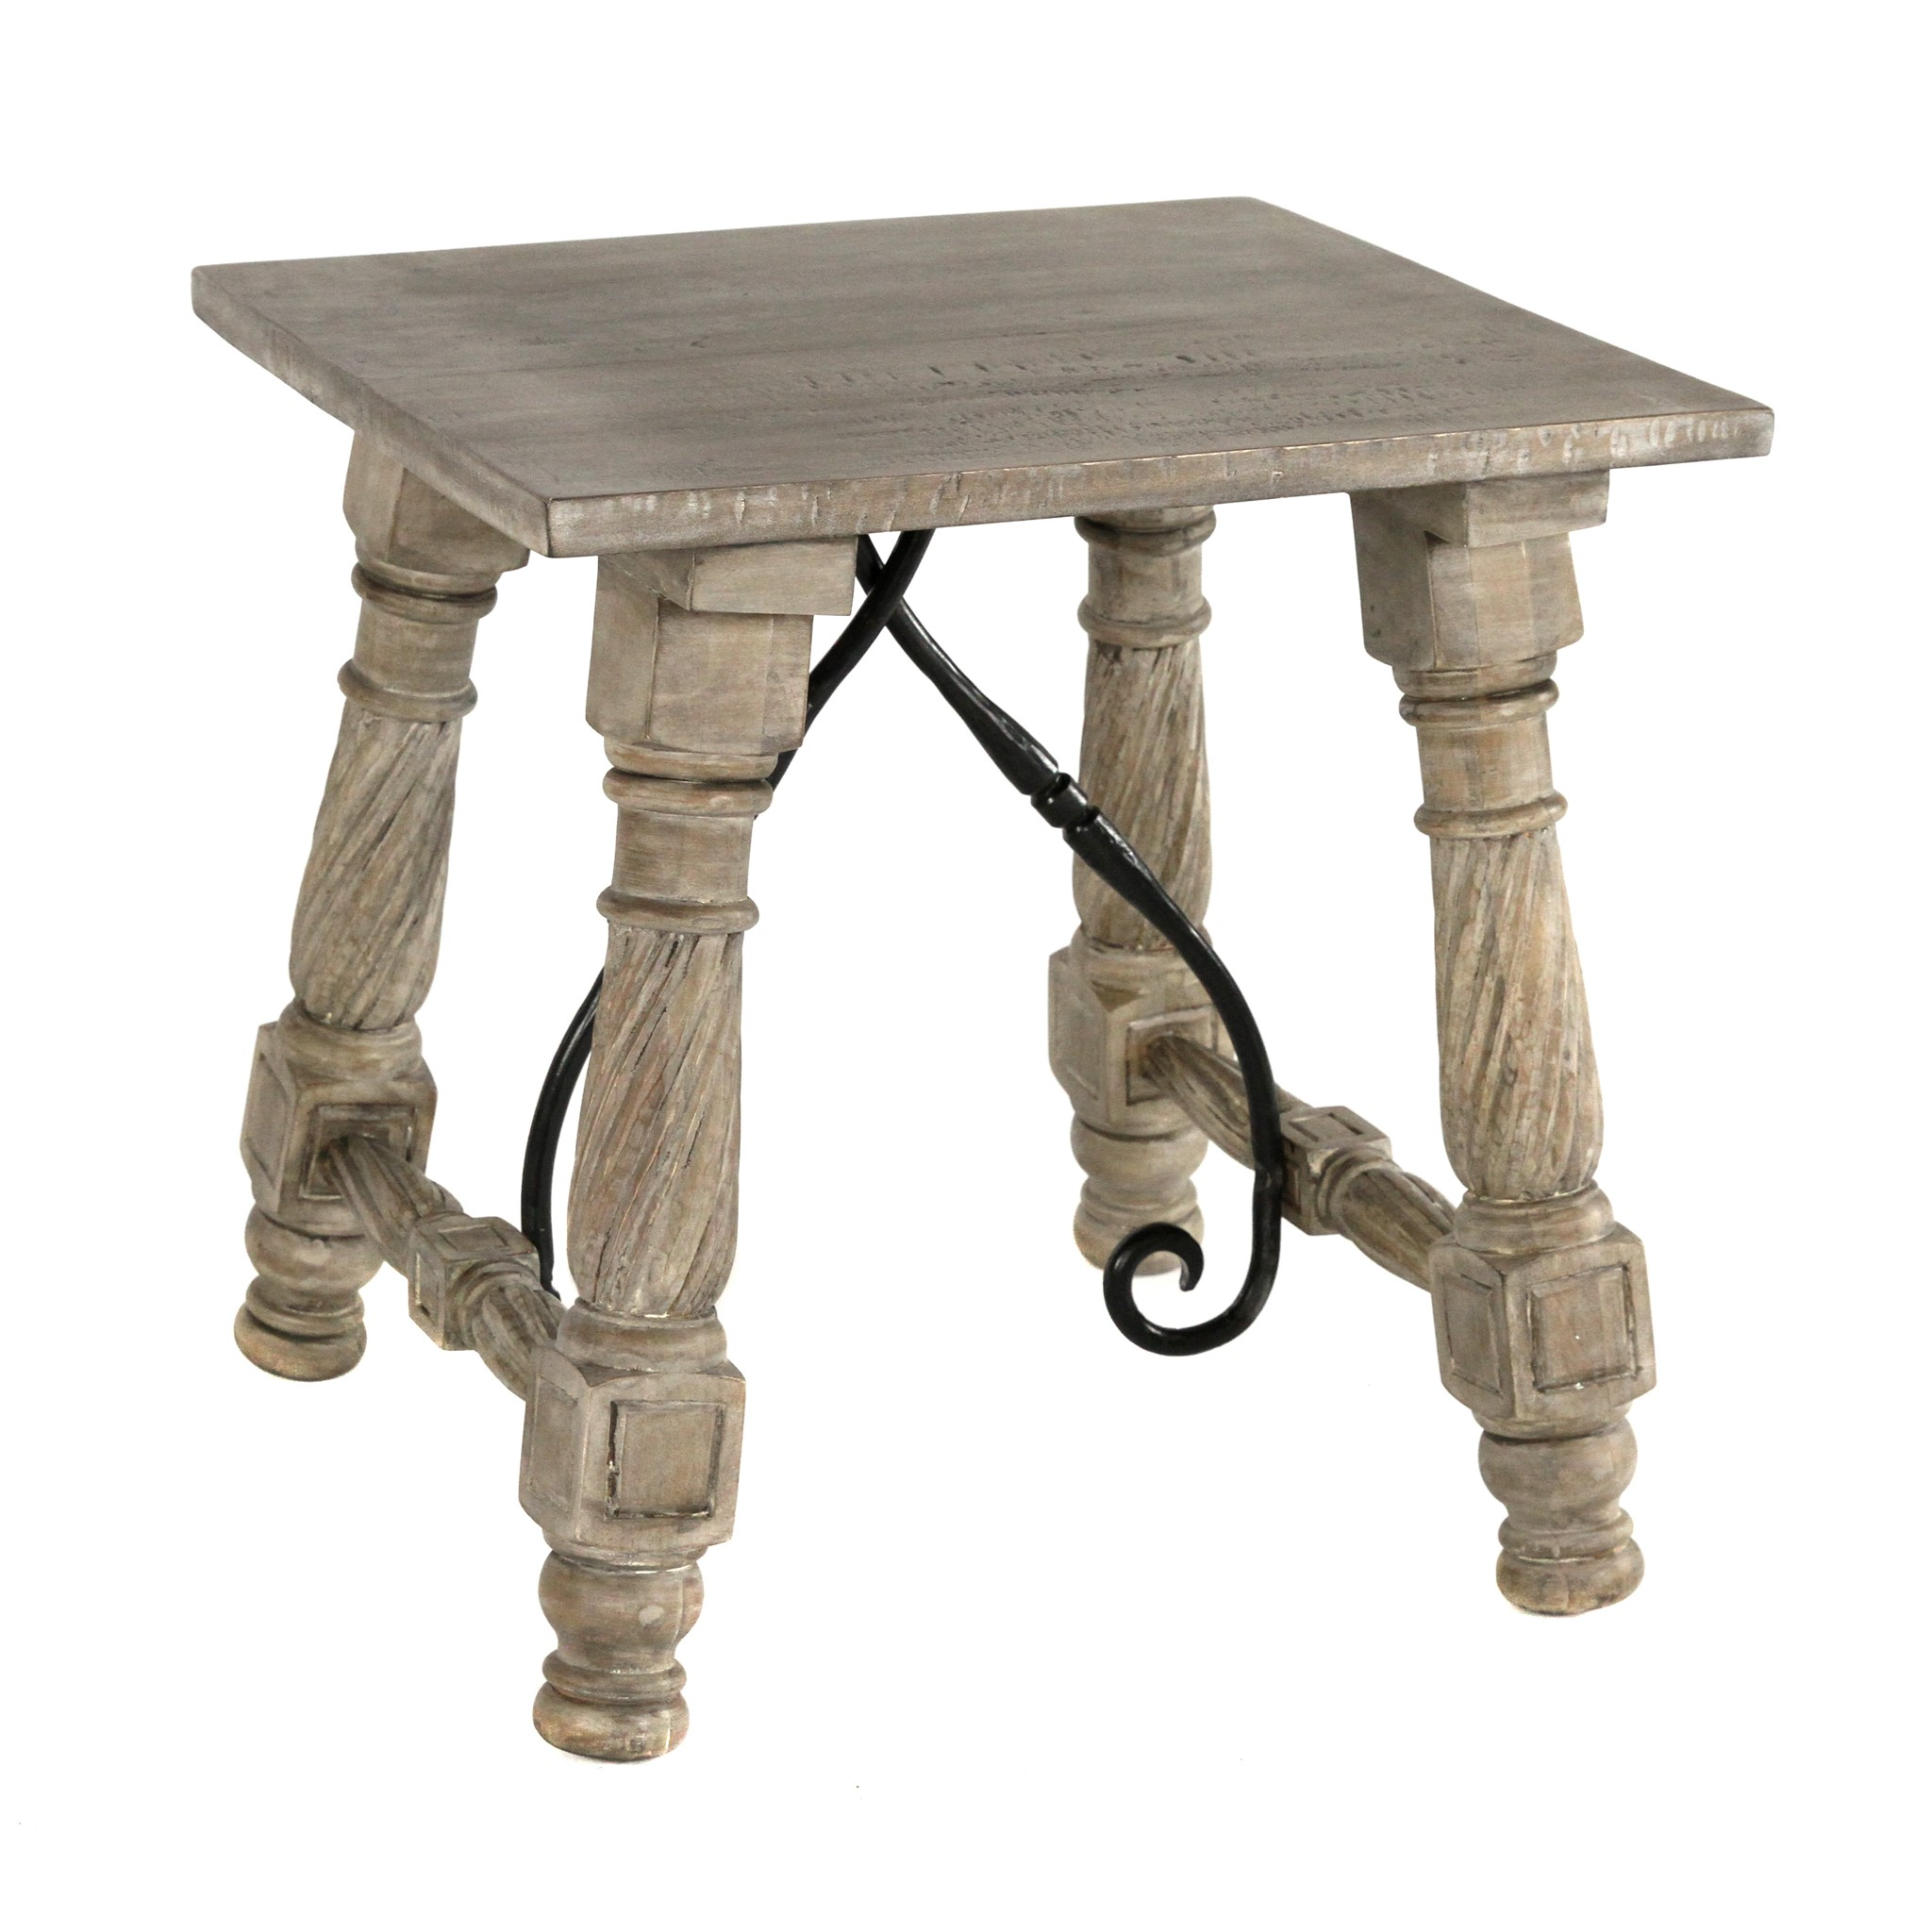 Monk's End Table (SAL) 24x24x24